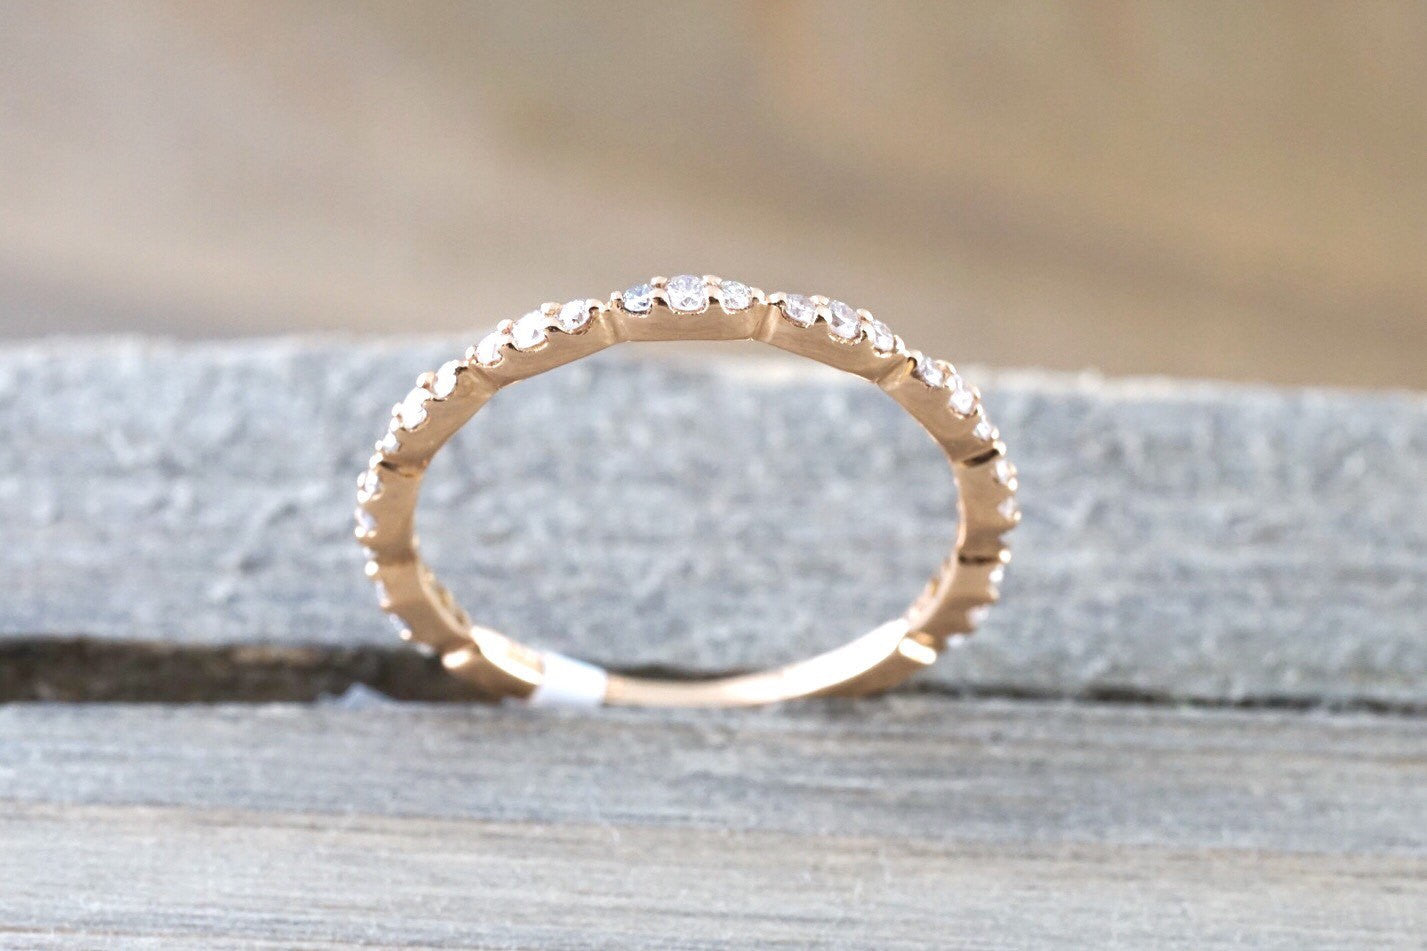 14k Rose Gold Dainty Diamond 3/4 Eternity Band Wedding Anniversary Love Ring Band Vintage - Brilliant Facets